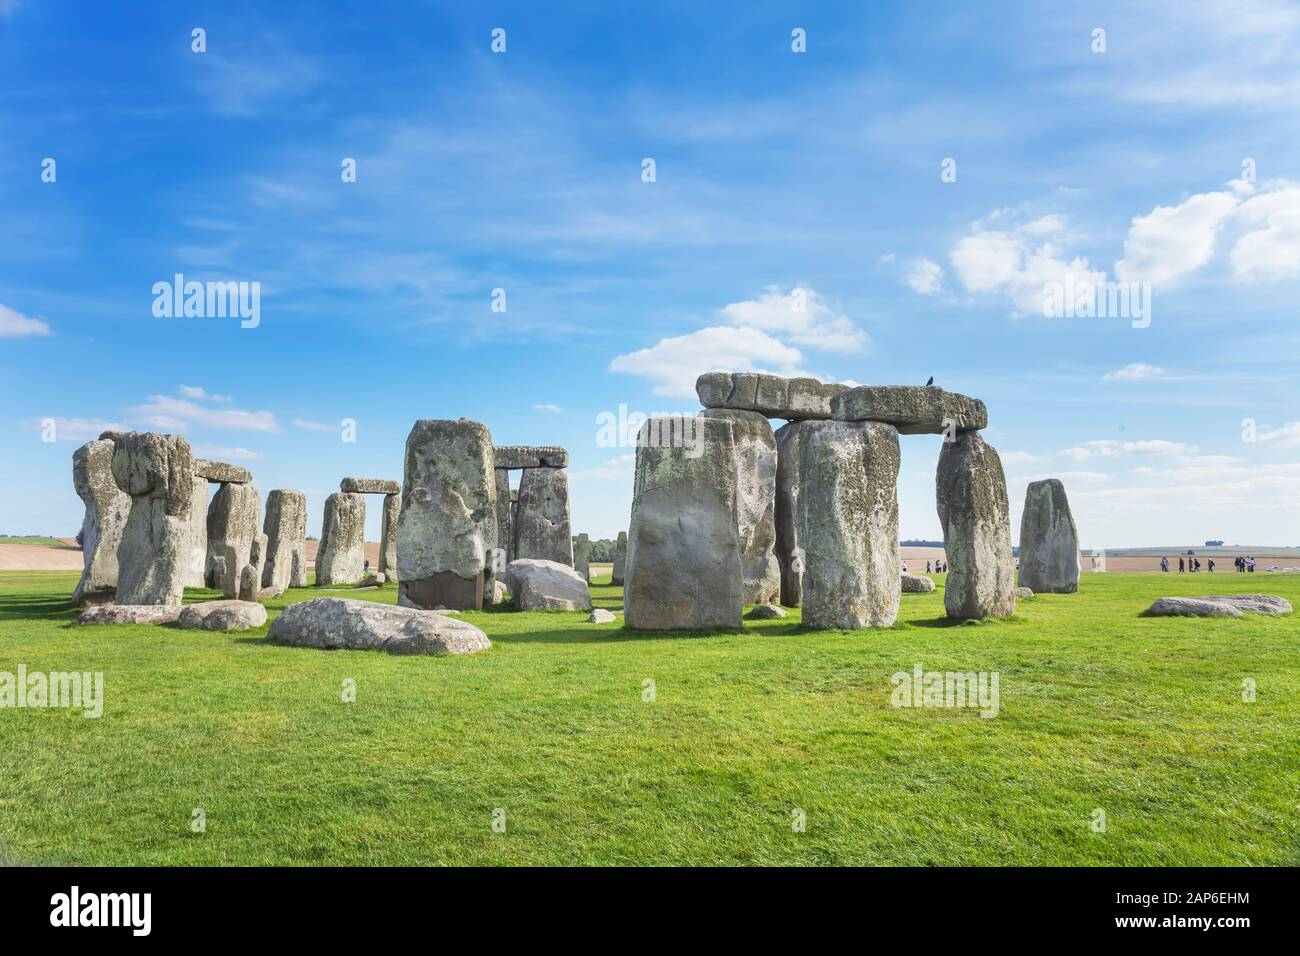 Stonehenge Wiltshire England Uk Stock Photo Alamy